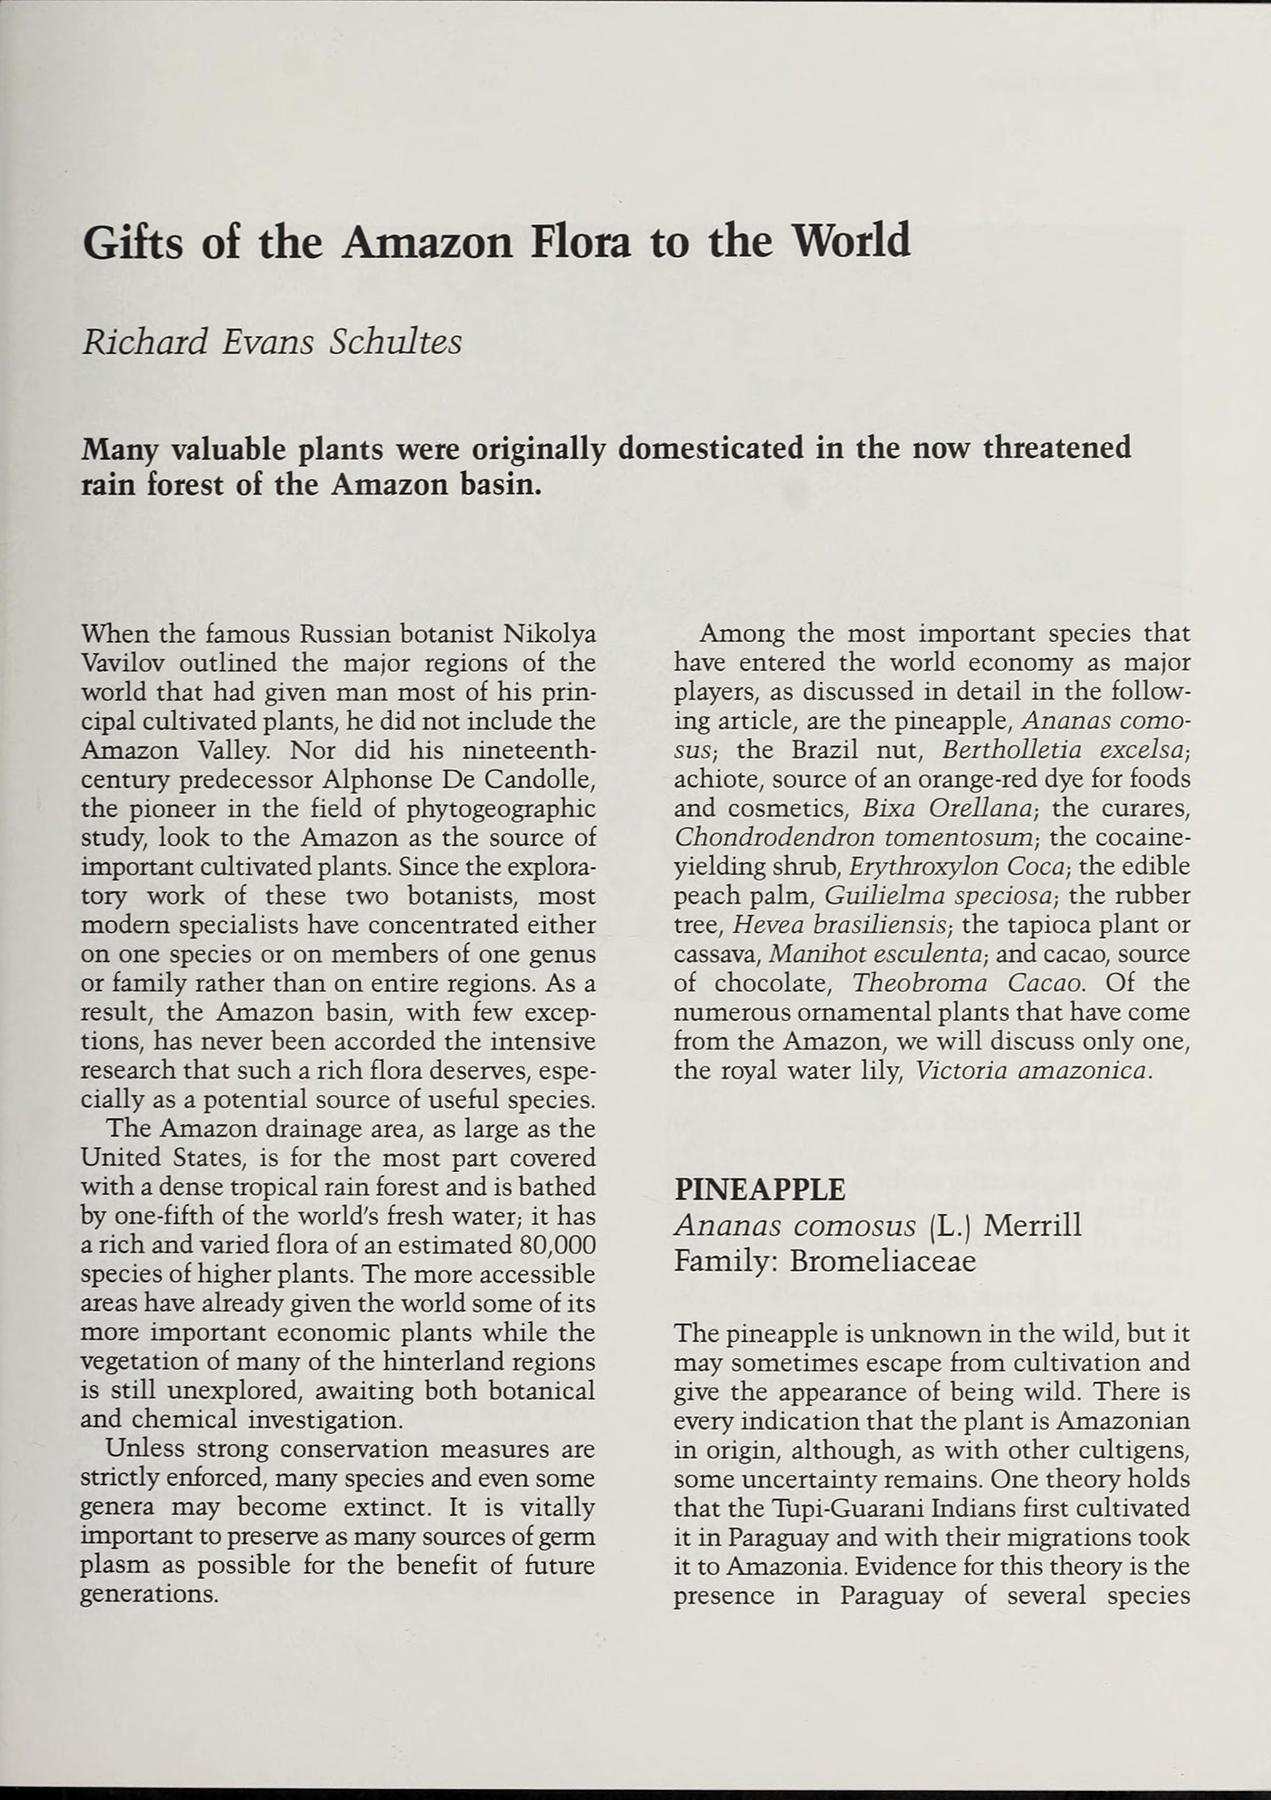 page of printed text